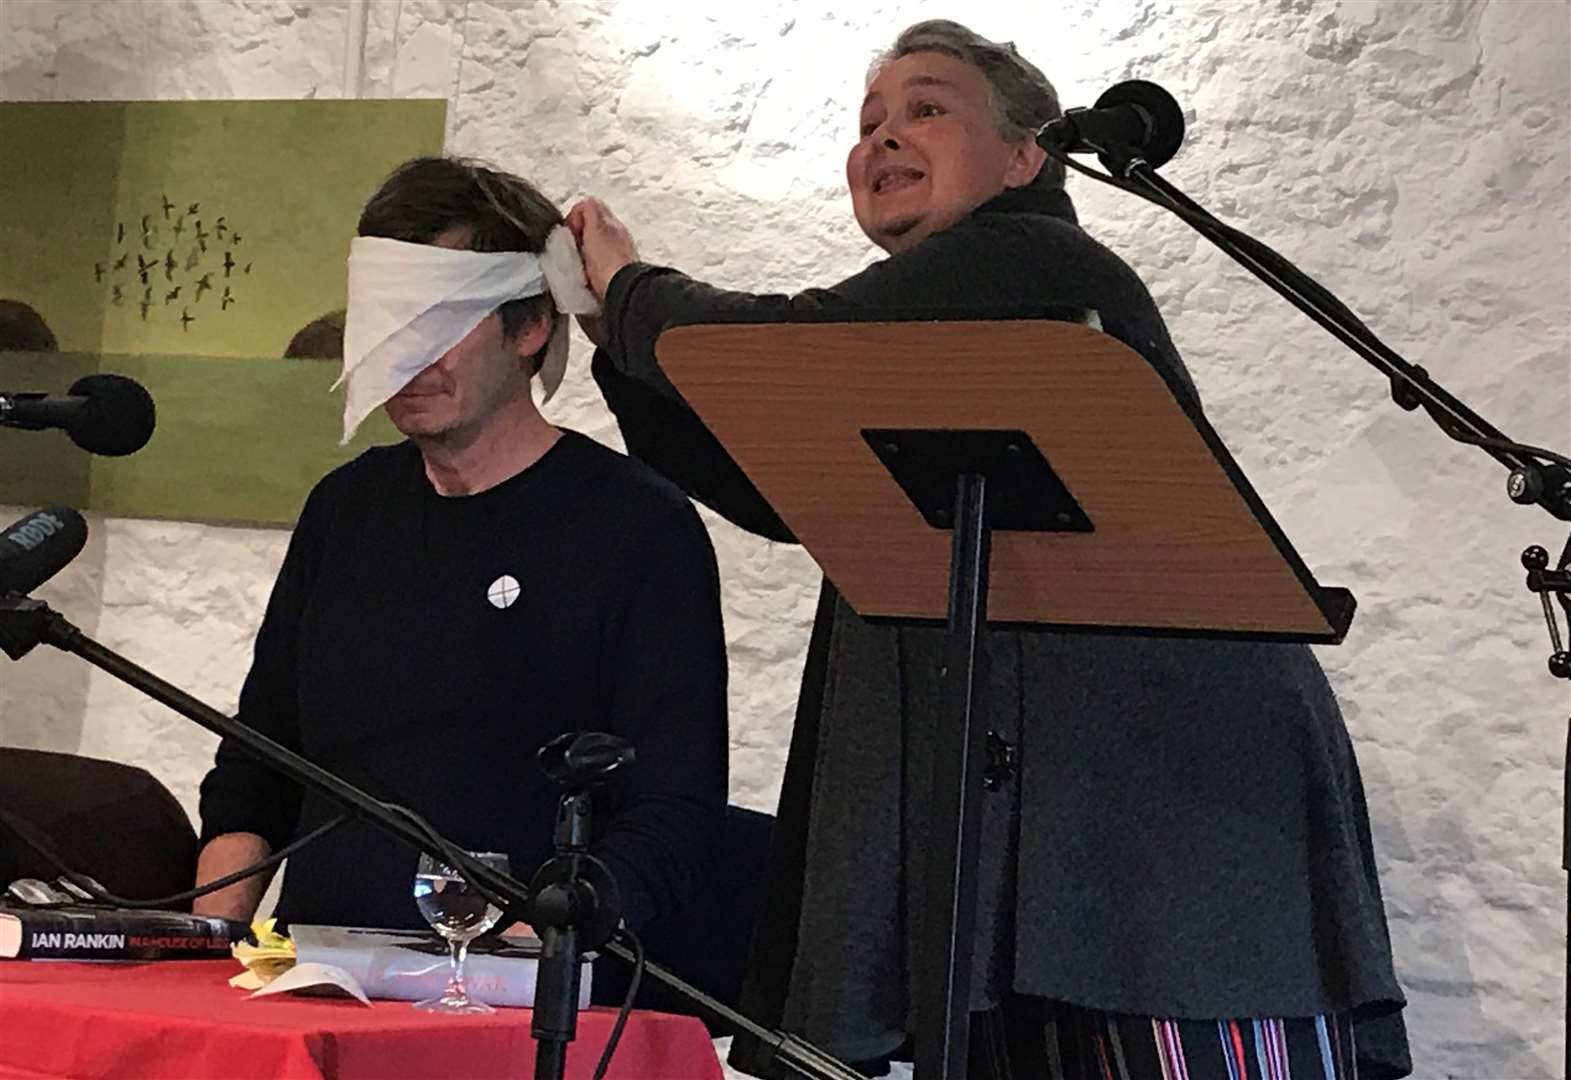 More laughter than slaughter at Cromarty's crime weekend